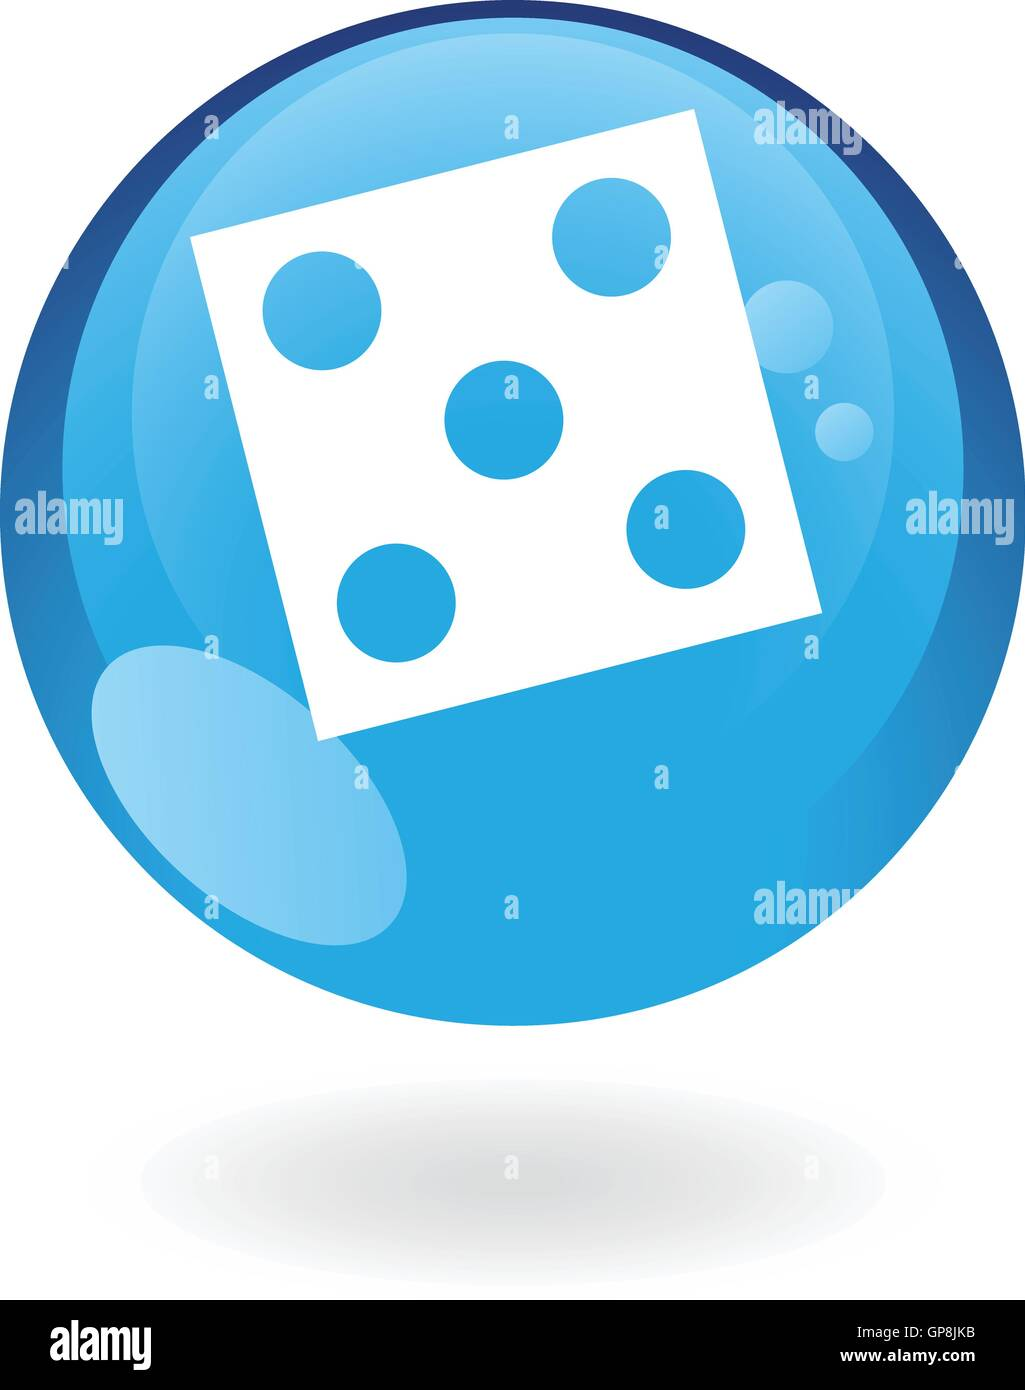 Blue dice isolated on white - Stock Image